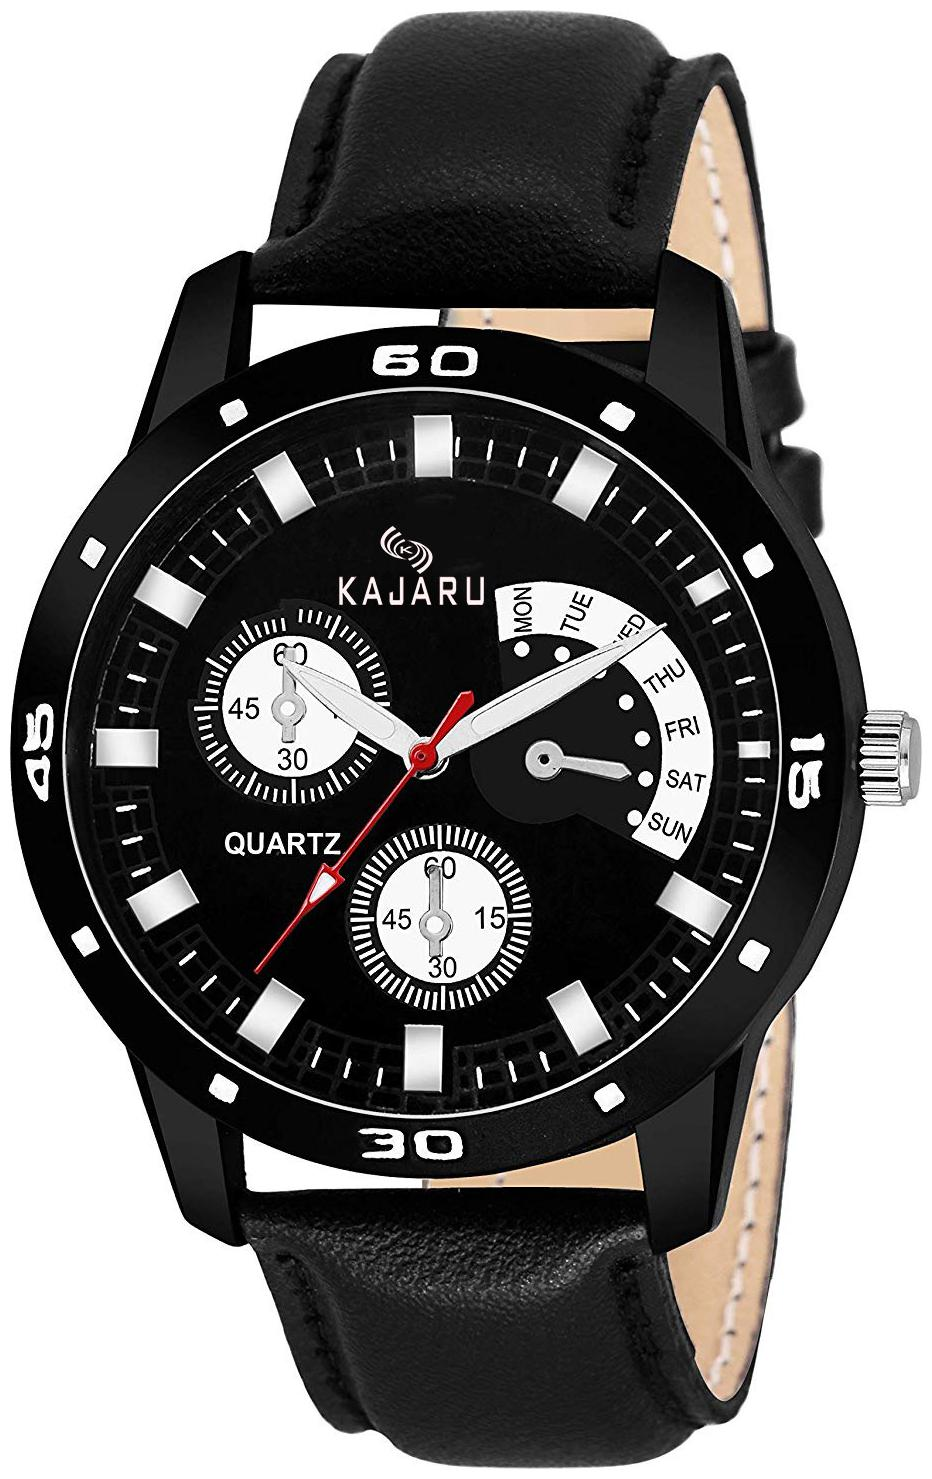 KAJARU K_452 ROUND DIAL LEATHER BELT Chronograph FANCY Chronograph WATCH FOR MEN